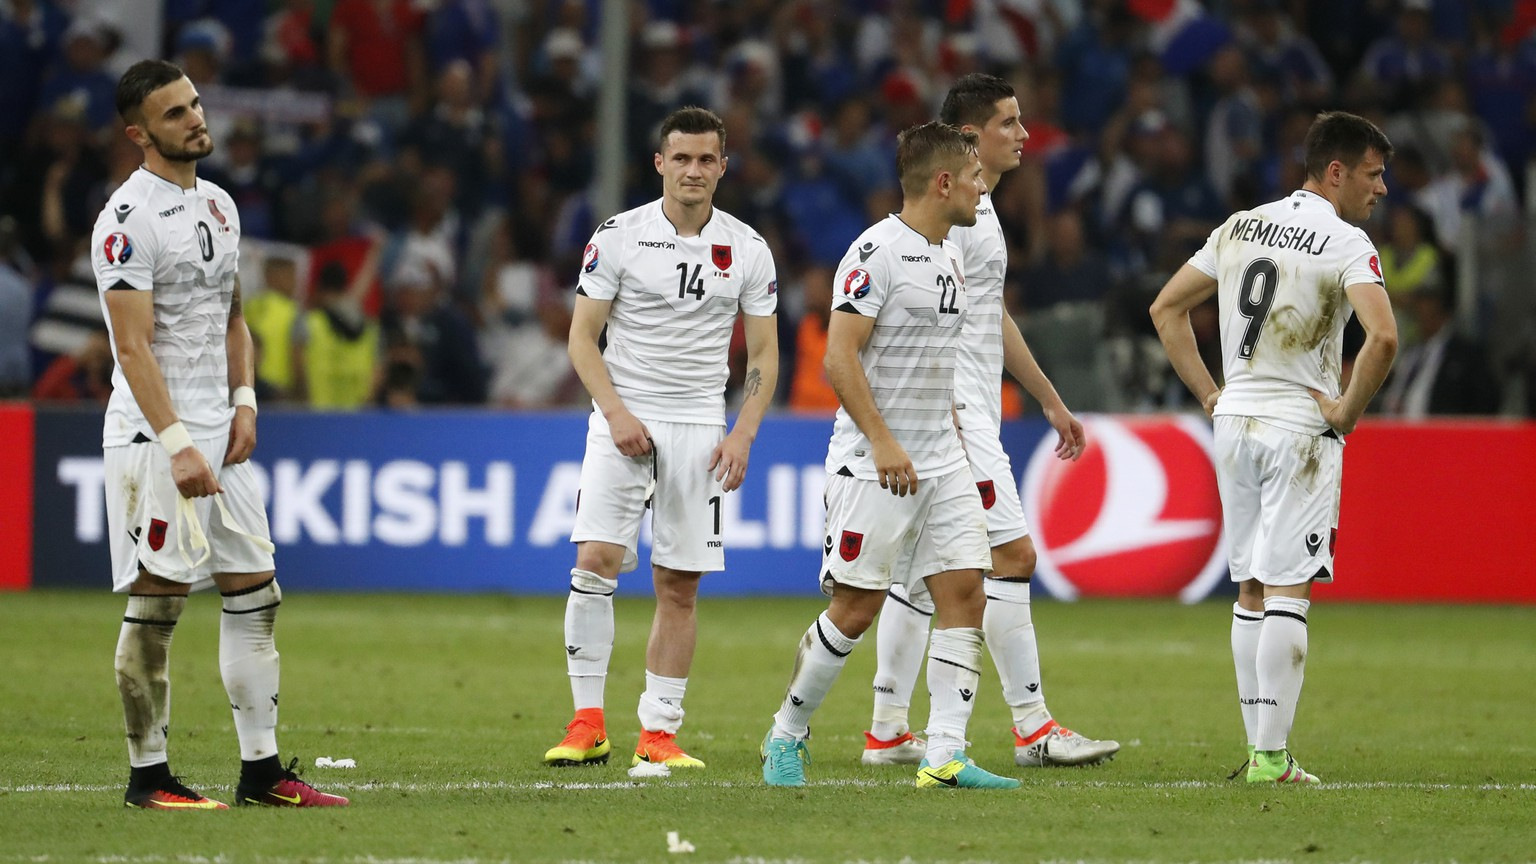 Football Soccer - France v Albania - EURO 2016 - Group A - Stade Vélodrome, Marseille, France - 15/6/16